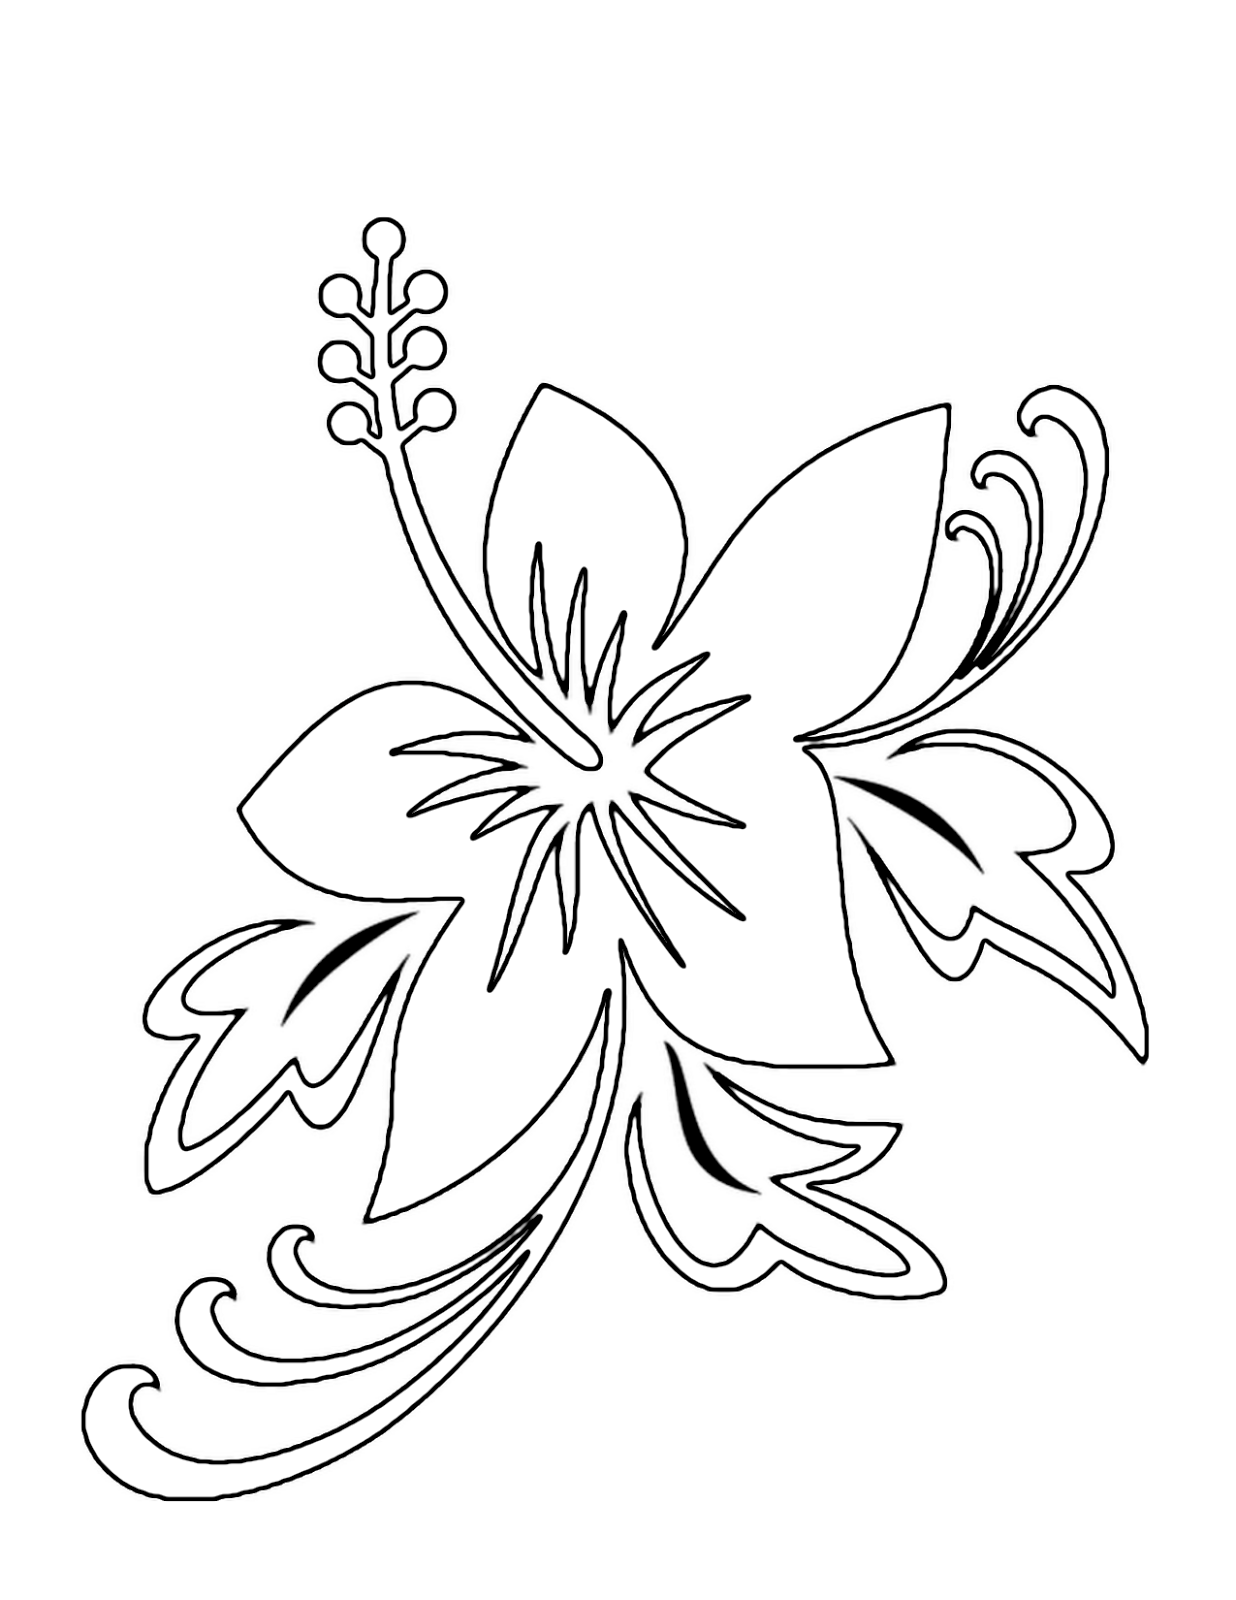 Free Butterfly Coloring Pages Education  - flowers and butterflies coloring pages